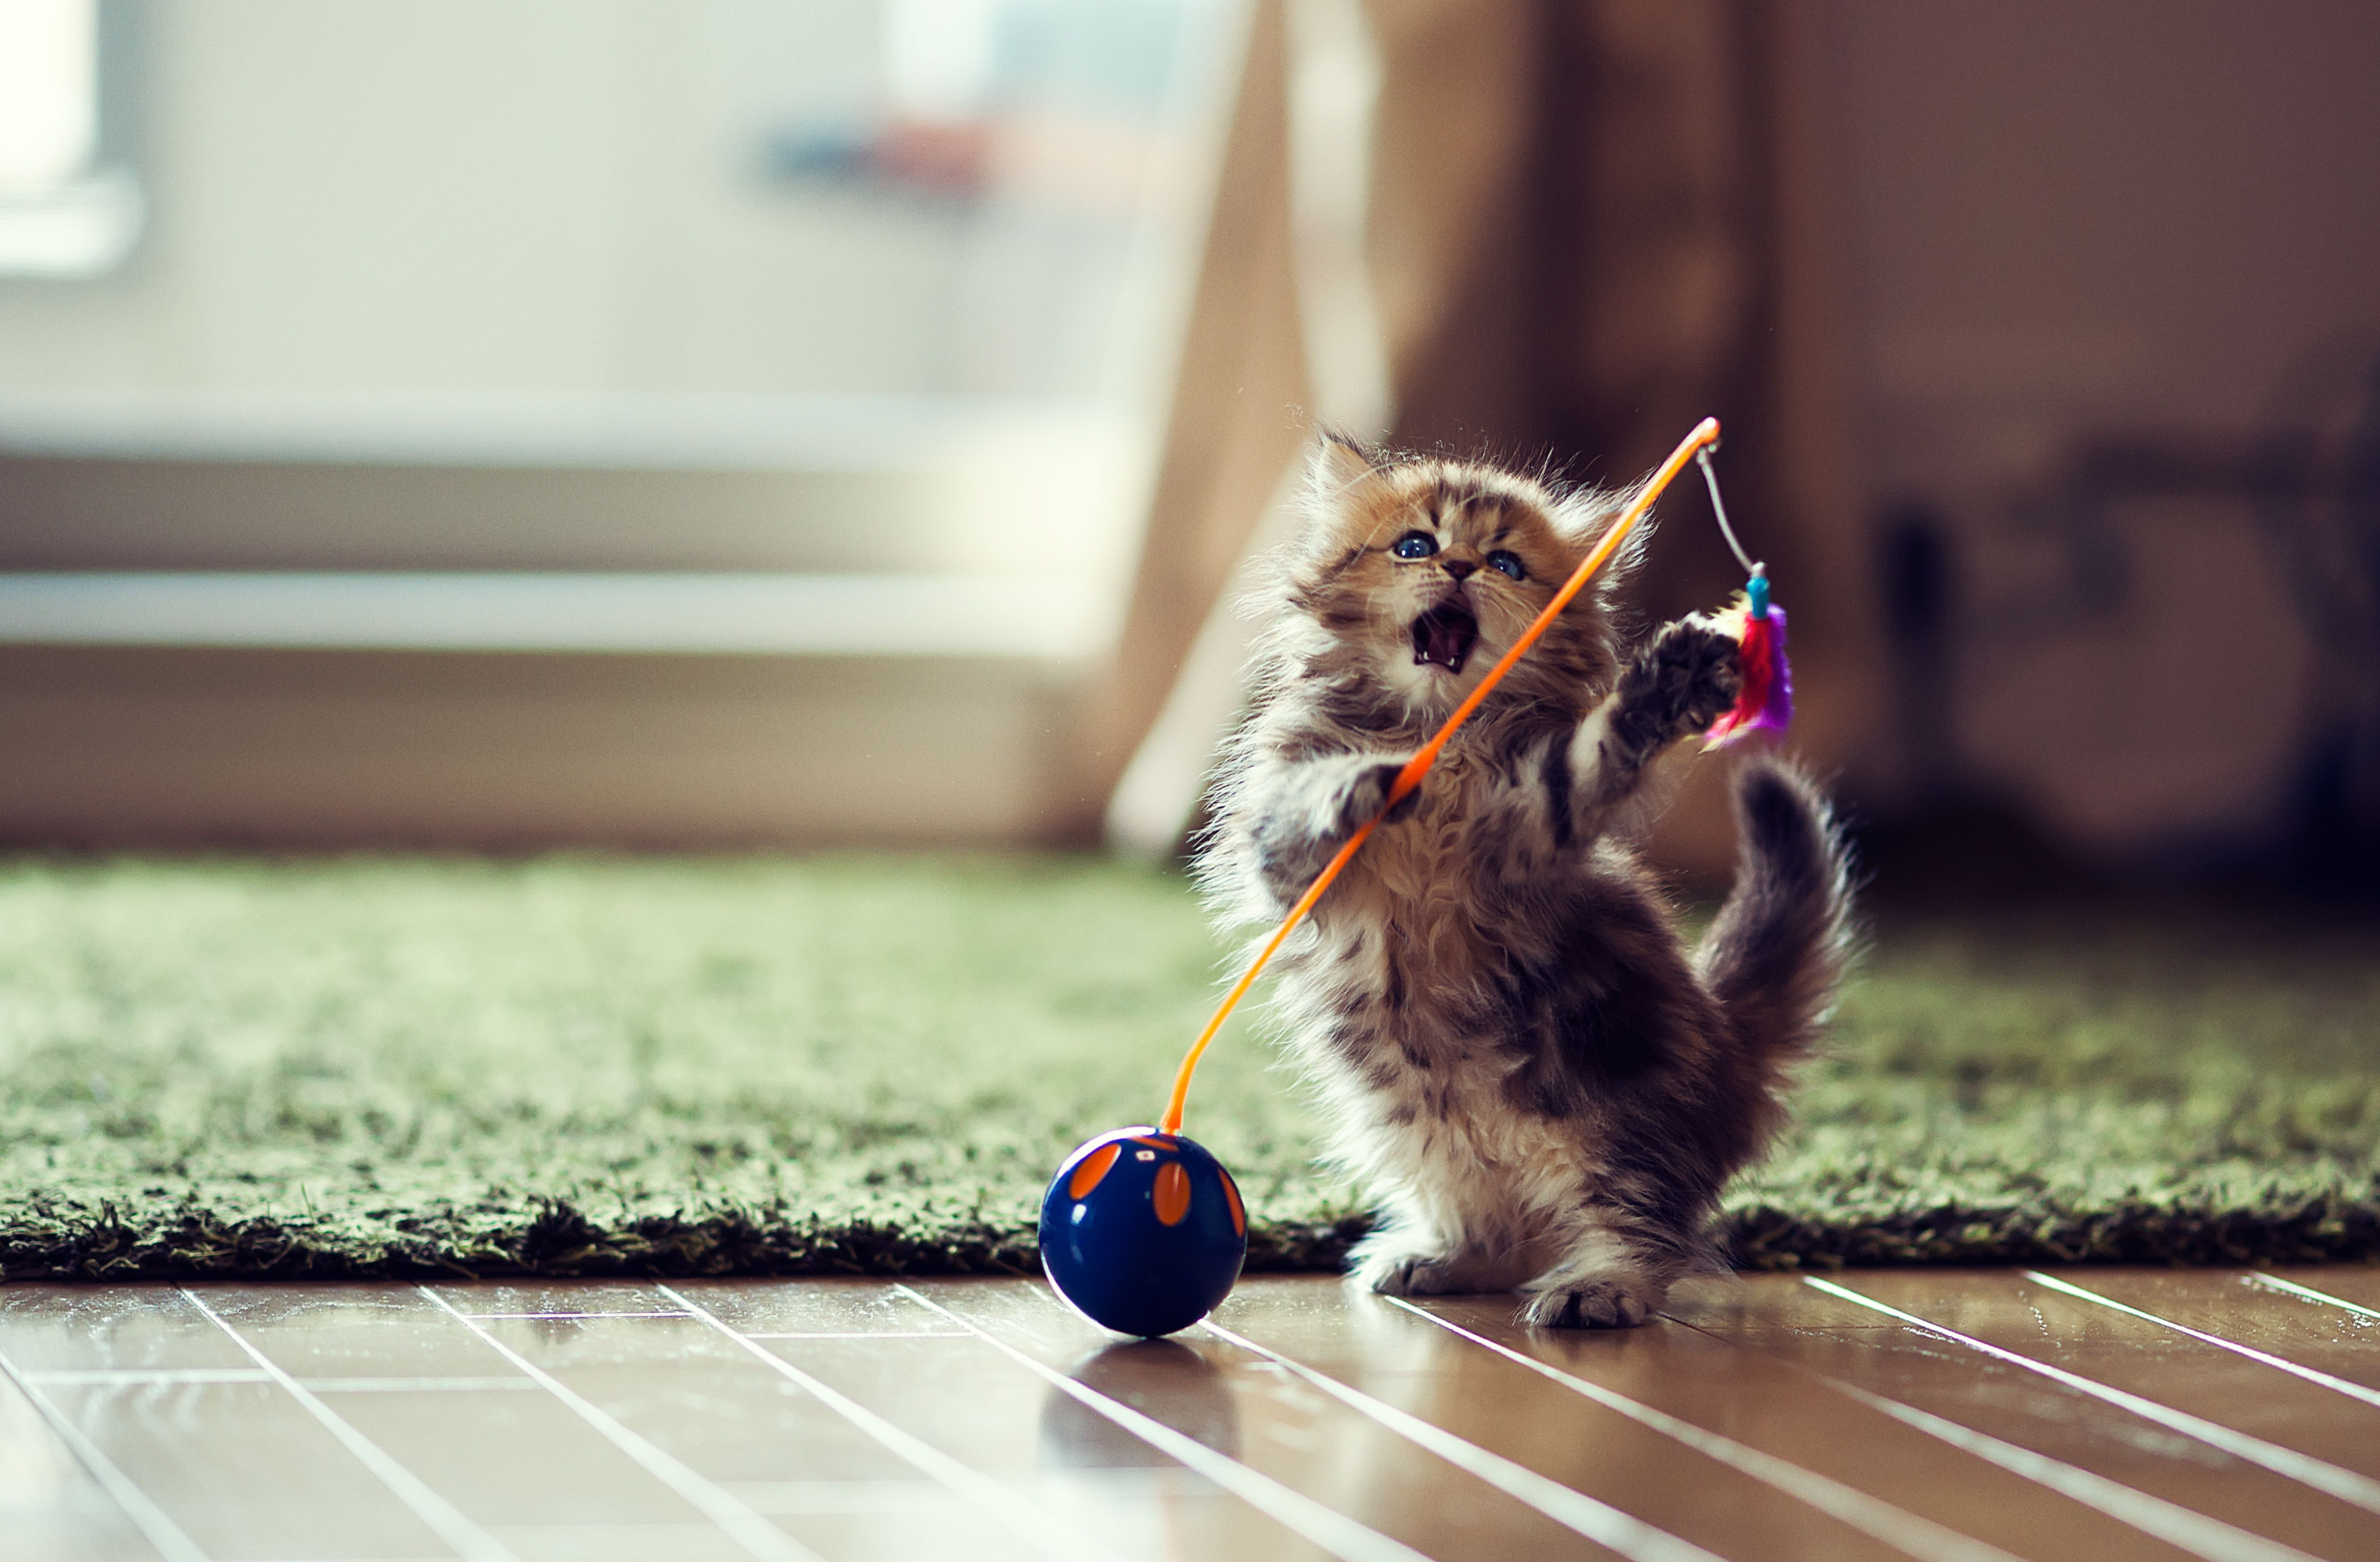 Look Daisy The Kitten Might Be The World S Cutest Cat Cute